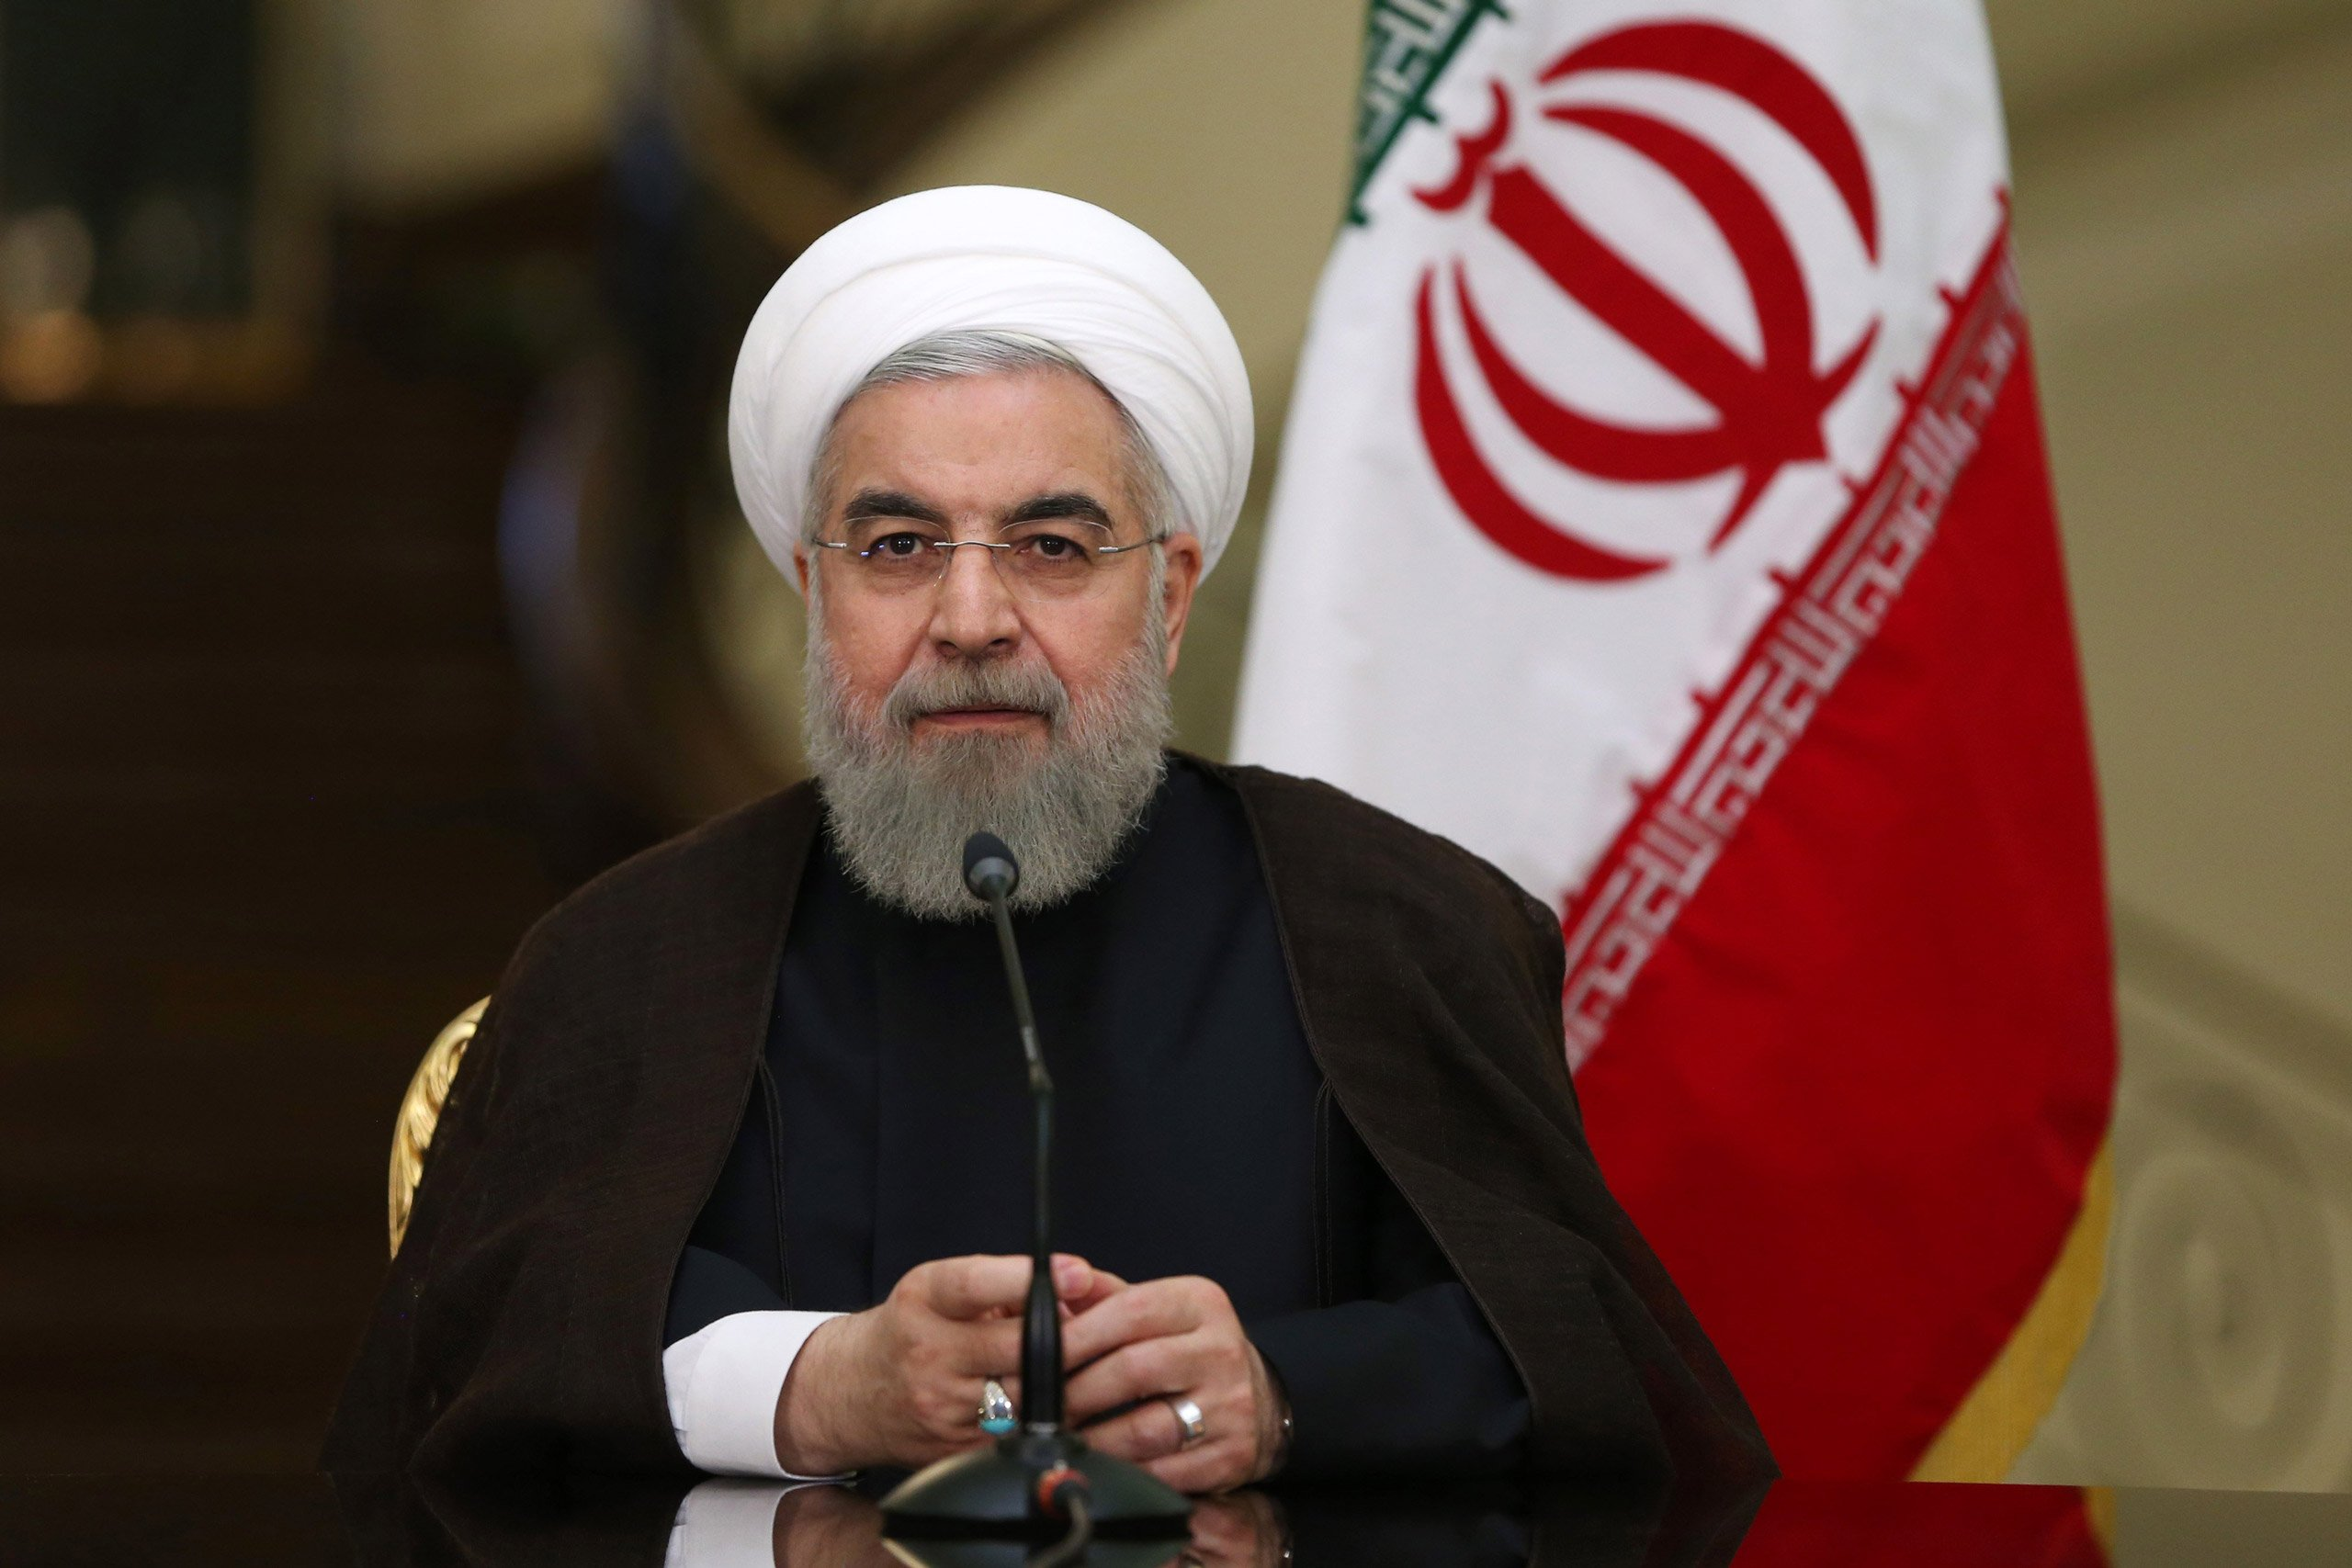 Condemnation from Iran after Canada sells Iranian government assets and gives proceeds to terrorism victims